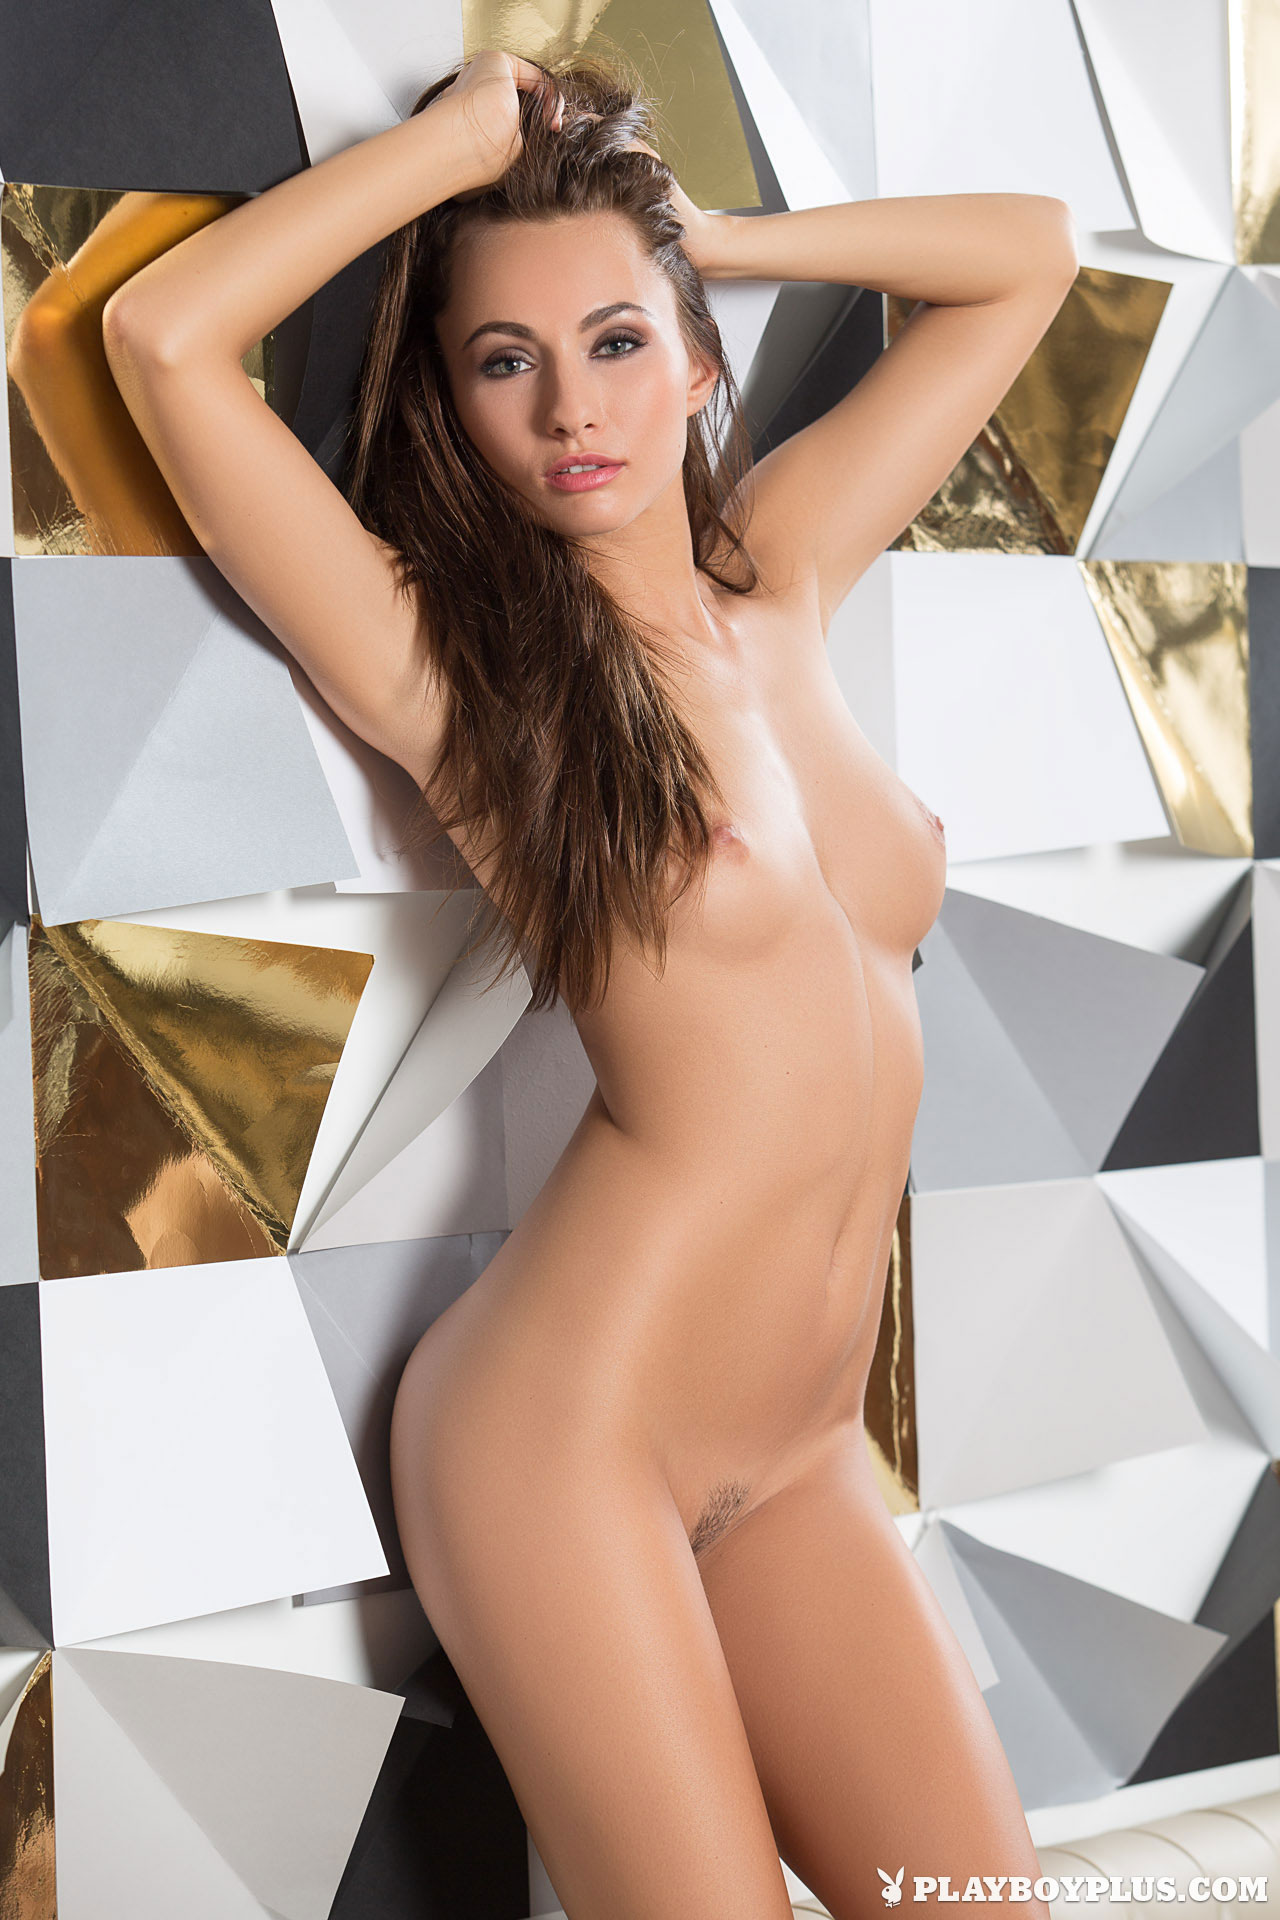 shaved-brunette-babe-michaela-isizzu-from-playboy-8.jpg